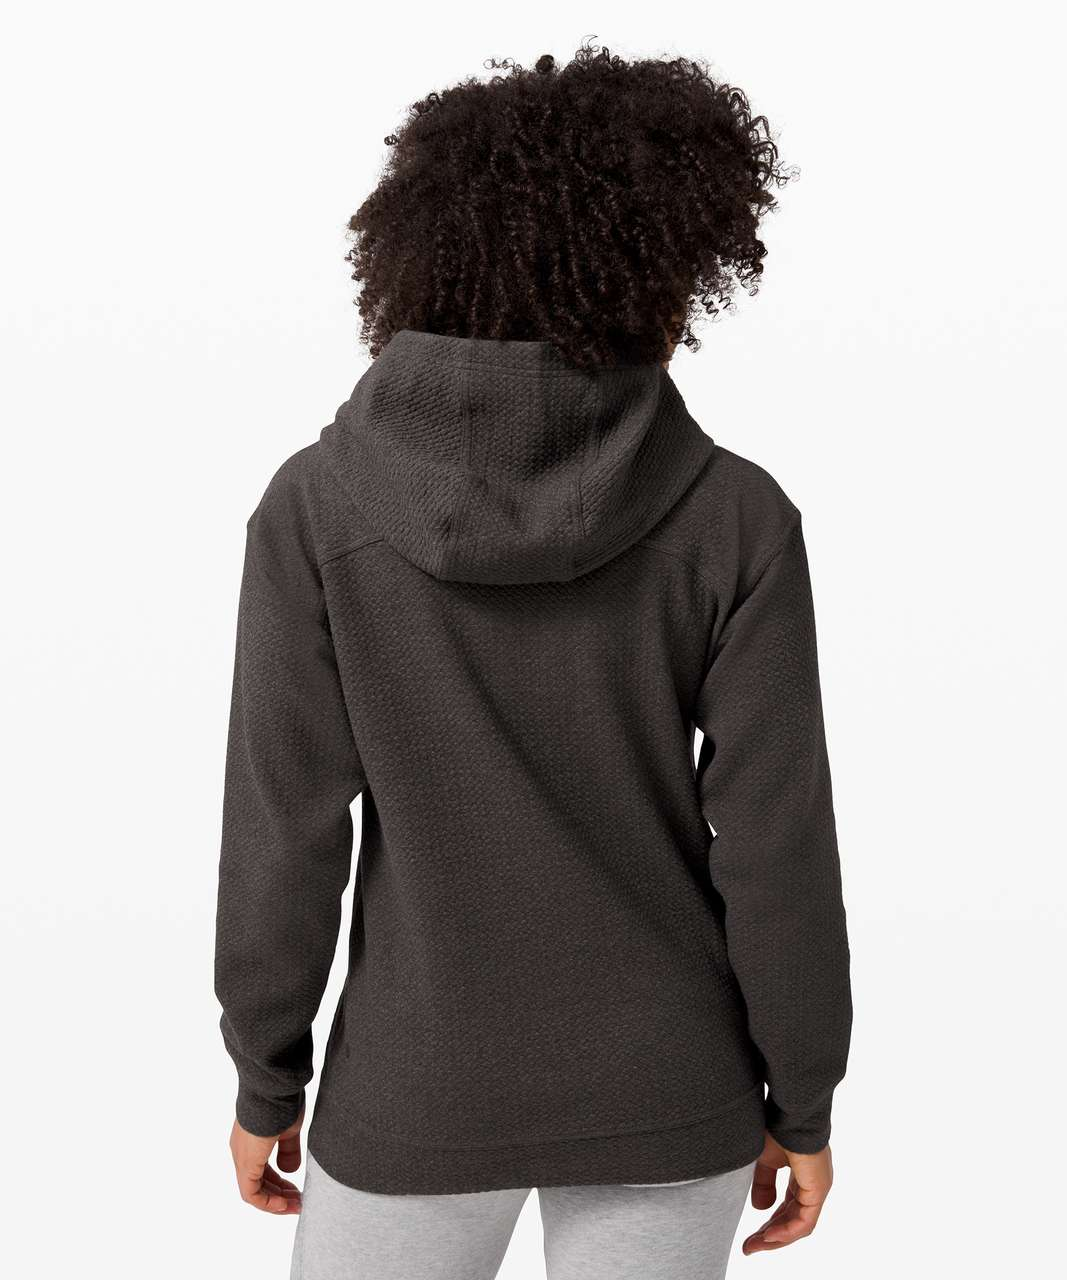 Lululemon All Yours Hoodie *Bubble Dot - Heathered Black / Black